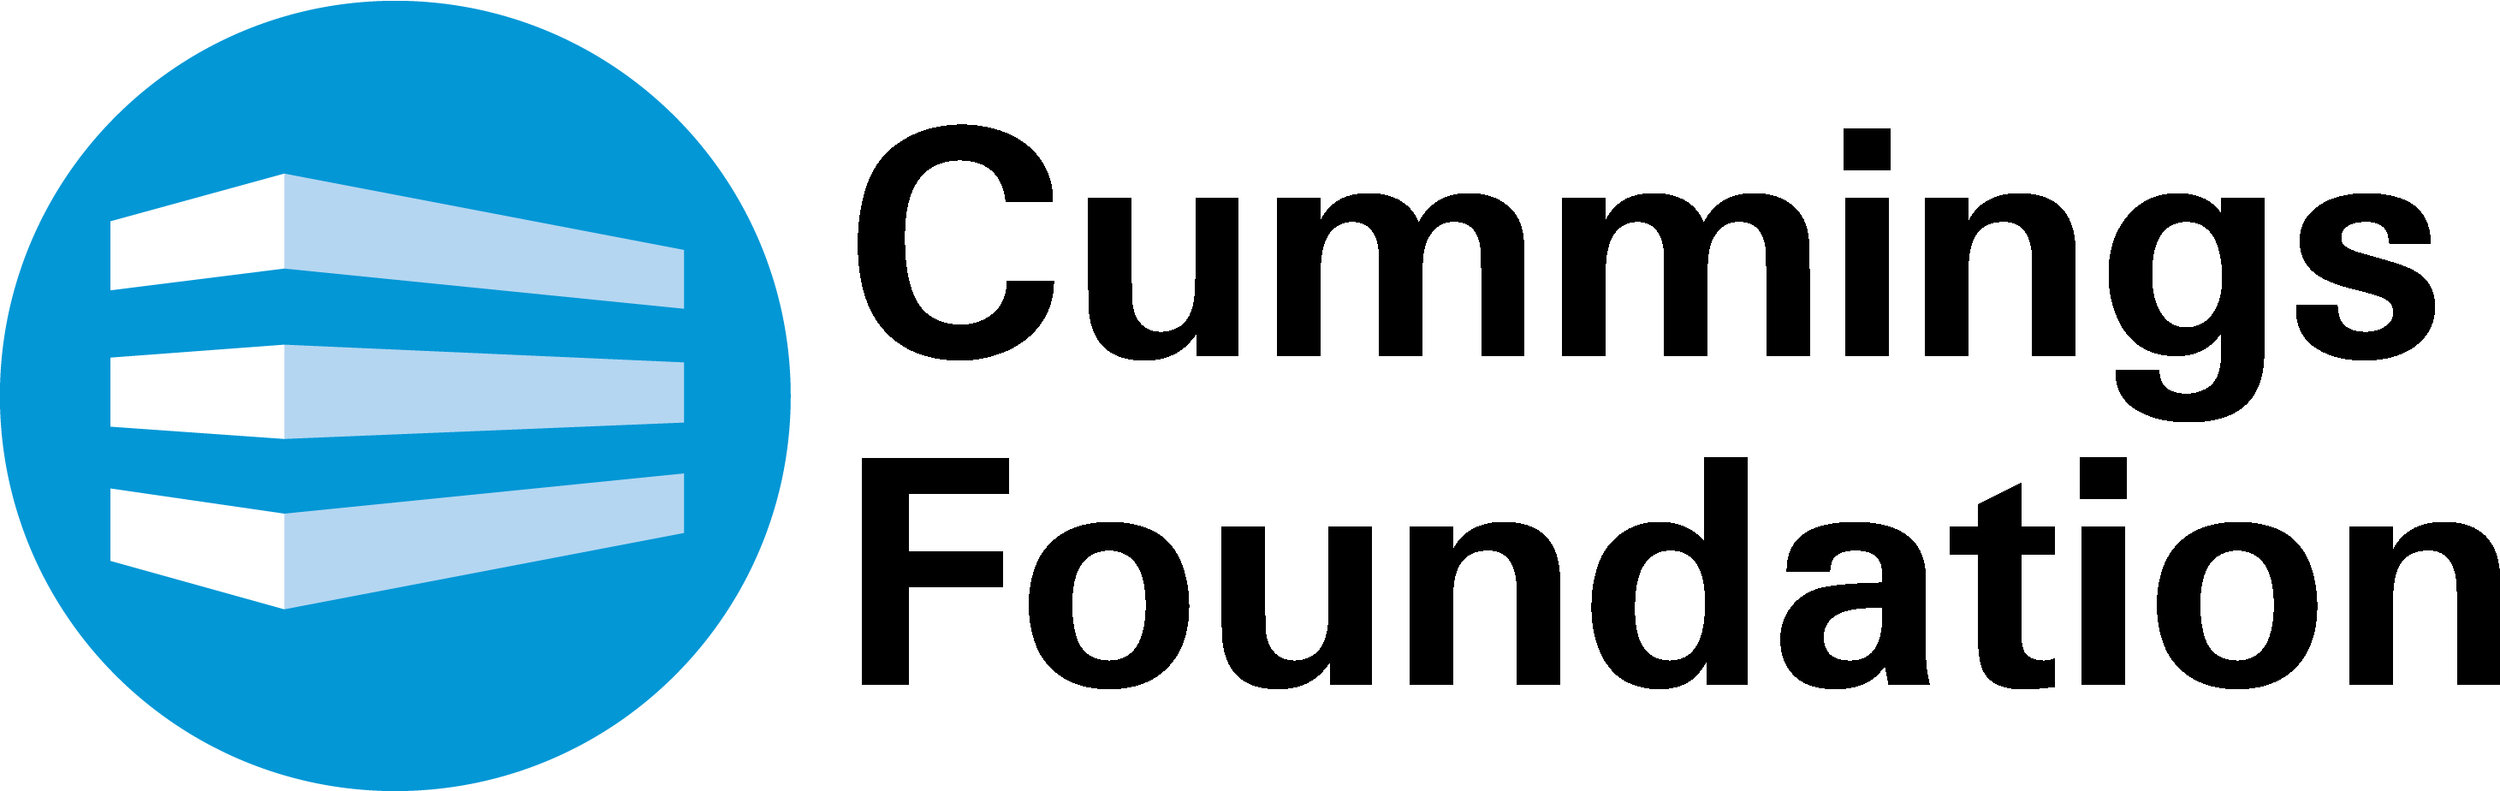 Cummings Foundation logo.jpg